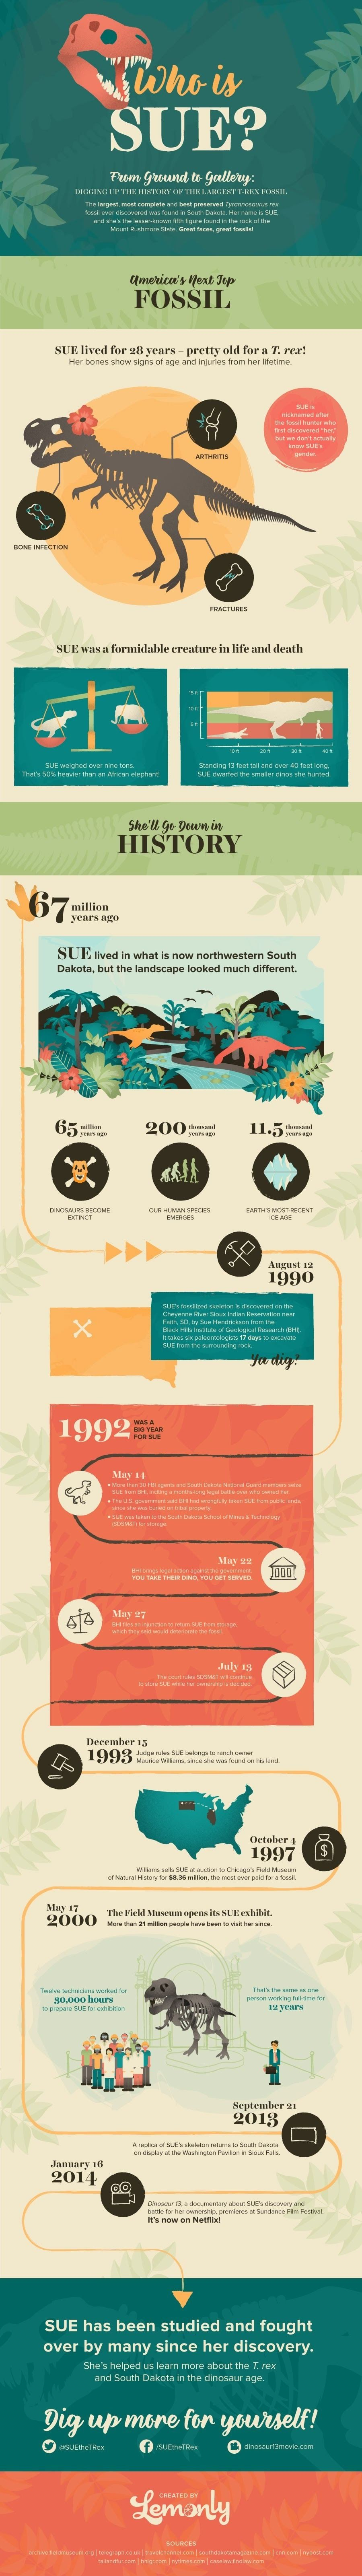 Who Is Sue? South Dakota's Biggest Dino #infographic